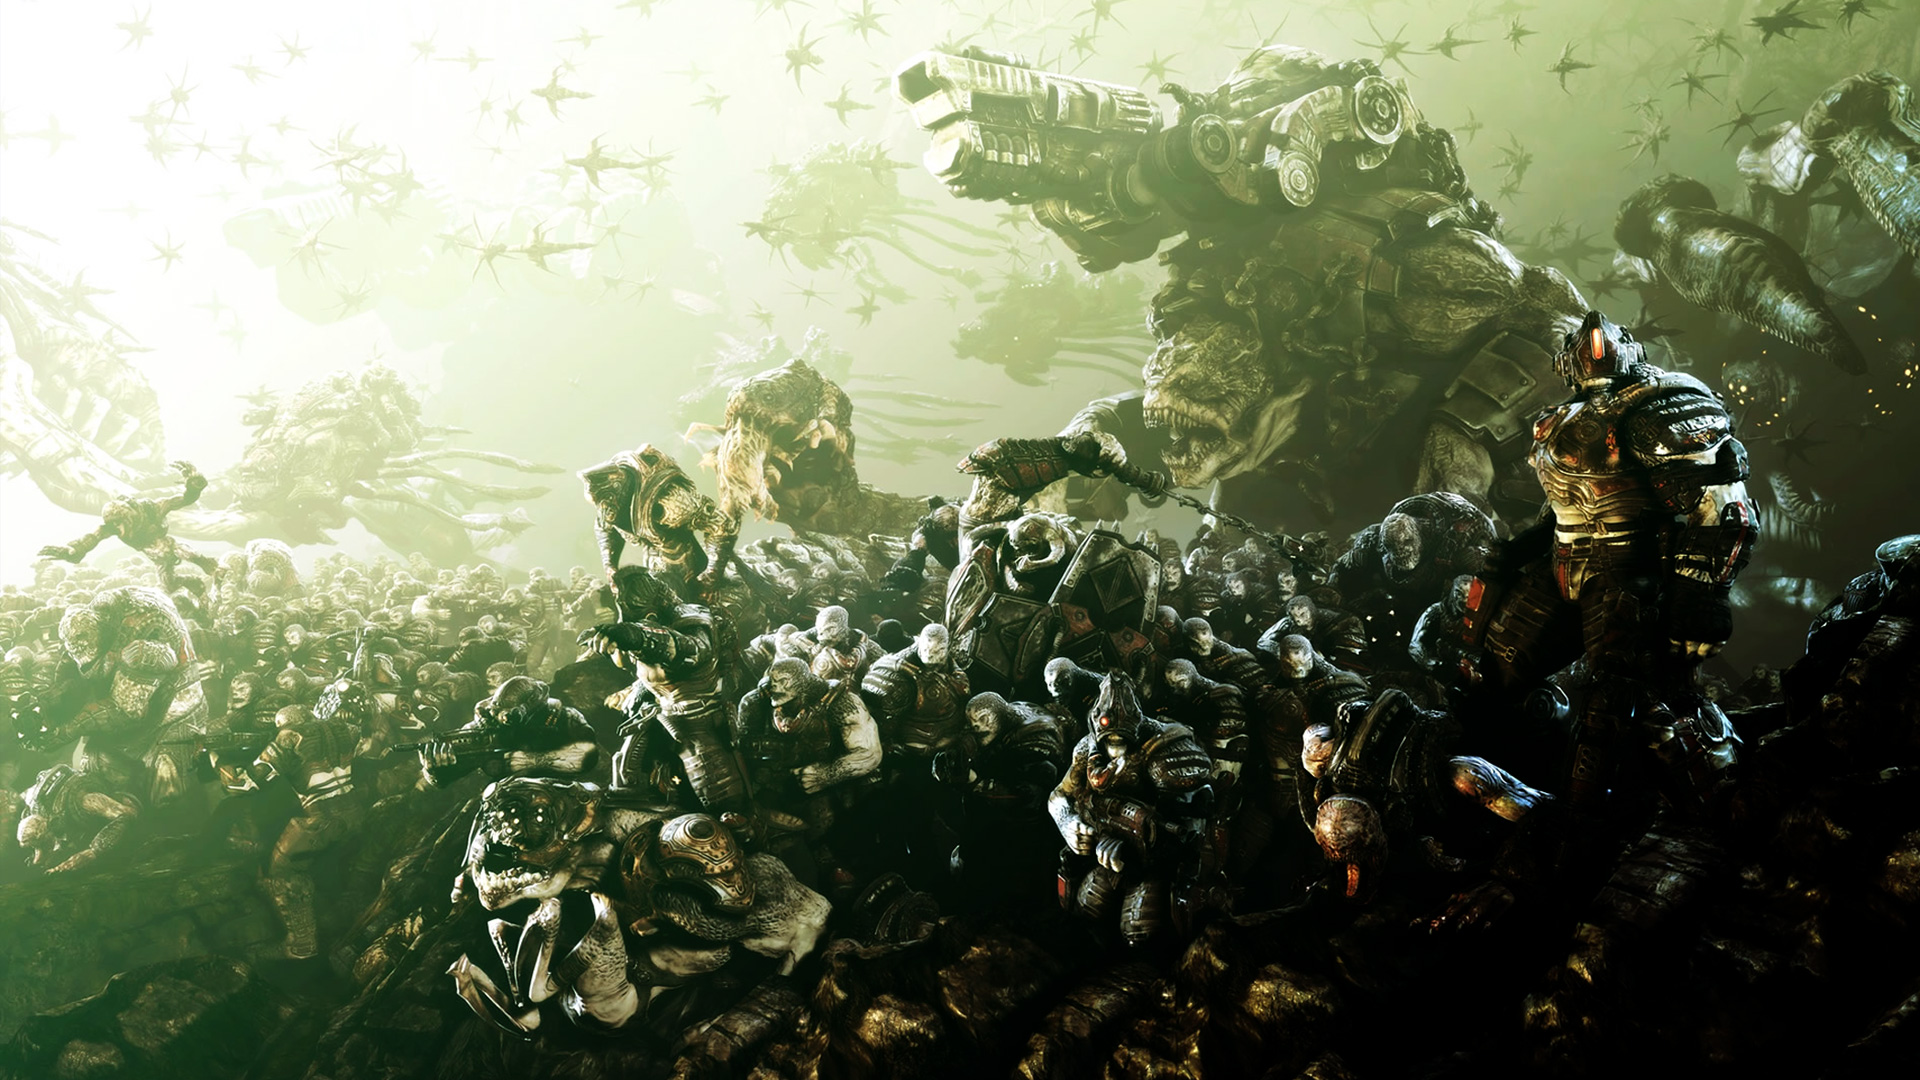 Gears of War 3 Wallpaper in 1920x1080